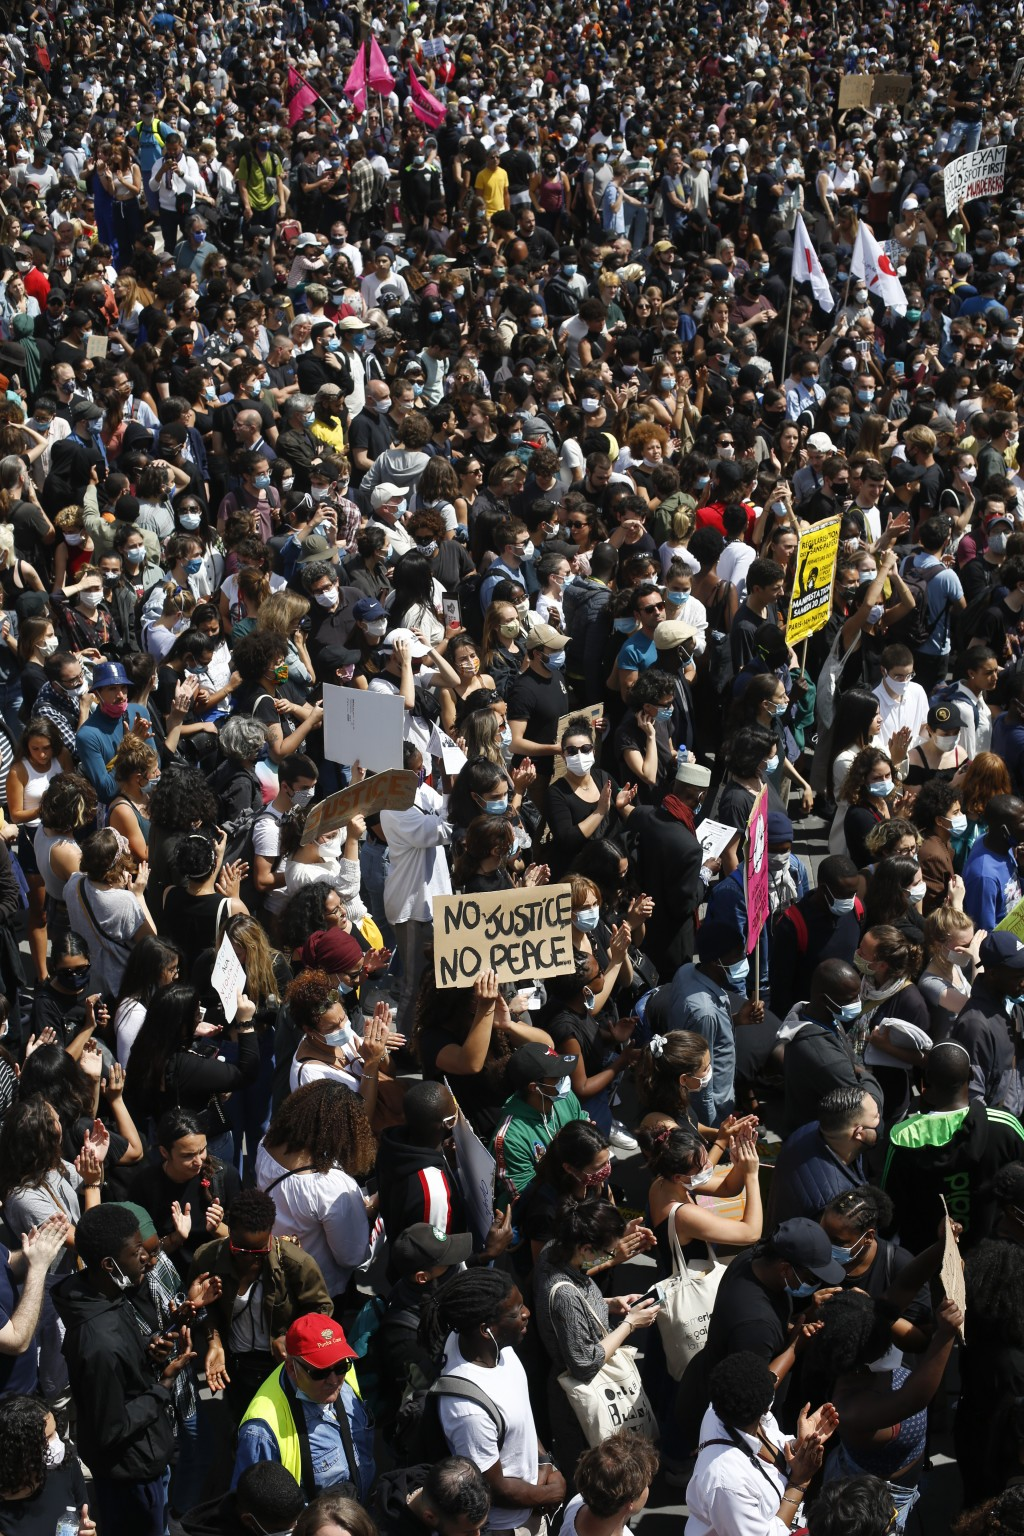 Thousands of people take part in a march against police brutality and racism in Paris, France, Saturday, June 13, 2020, organized by supporters of Ada...